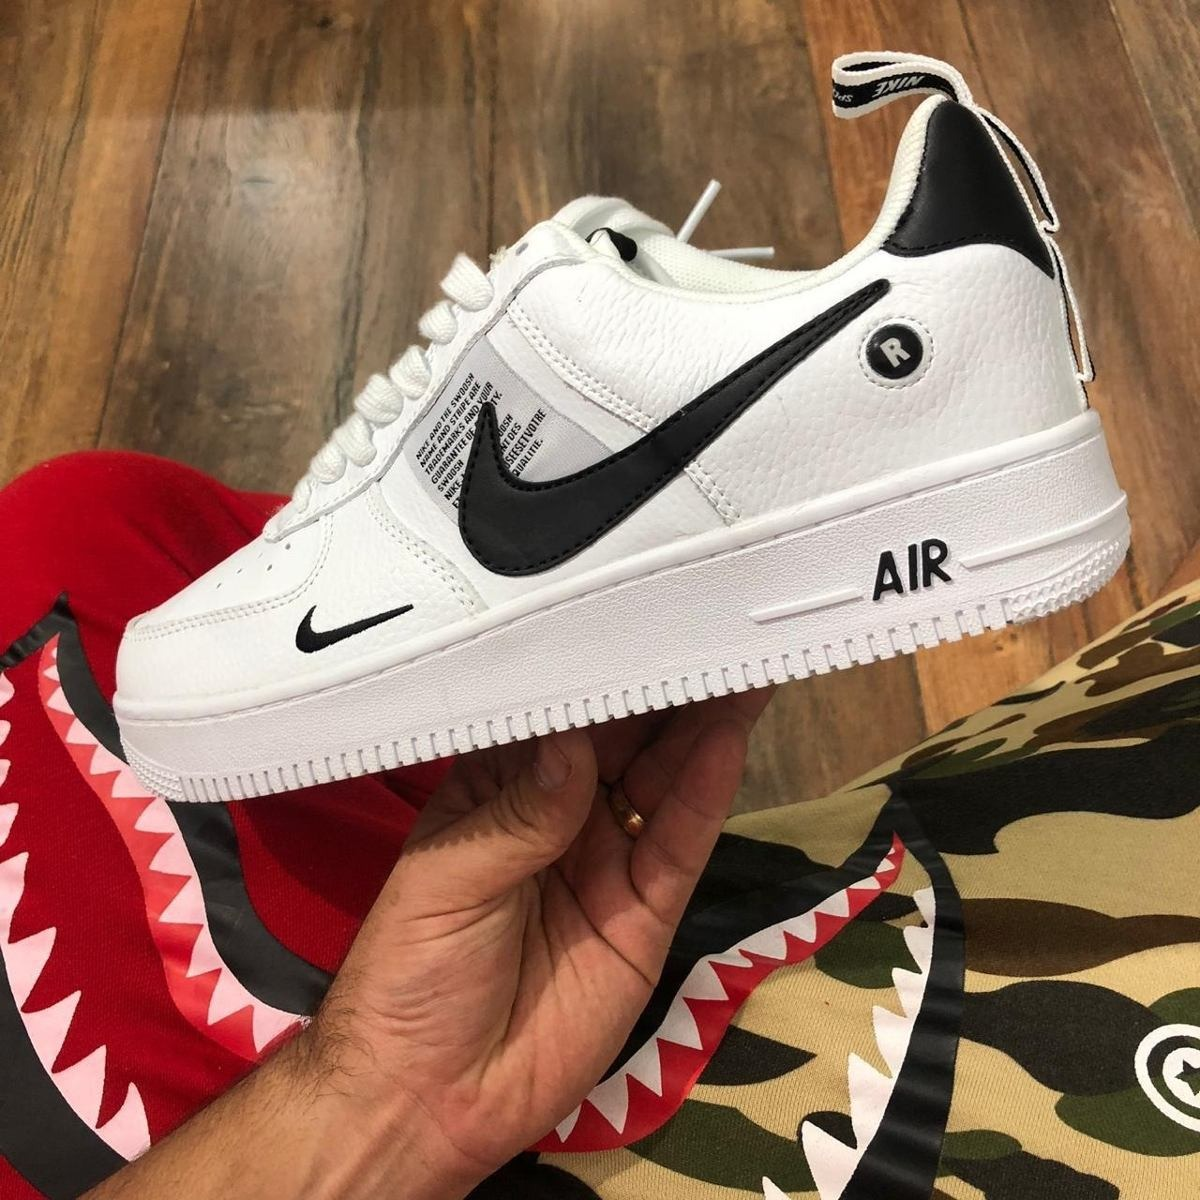 Tenis Nike Air Force 1 Blanco Negro Hombre